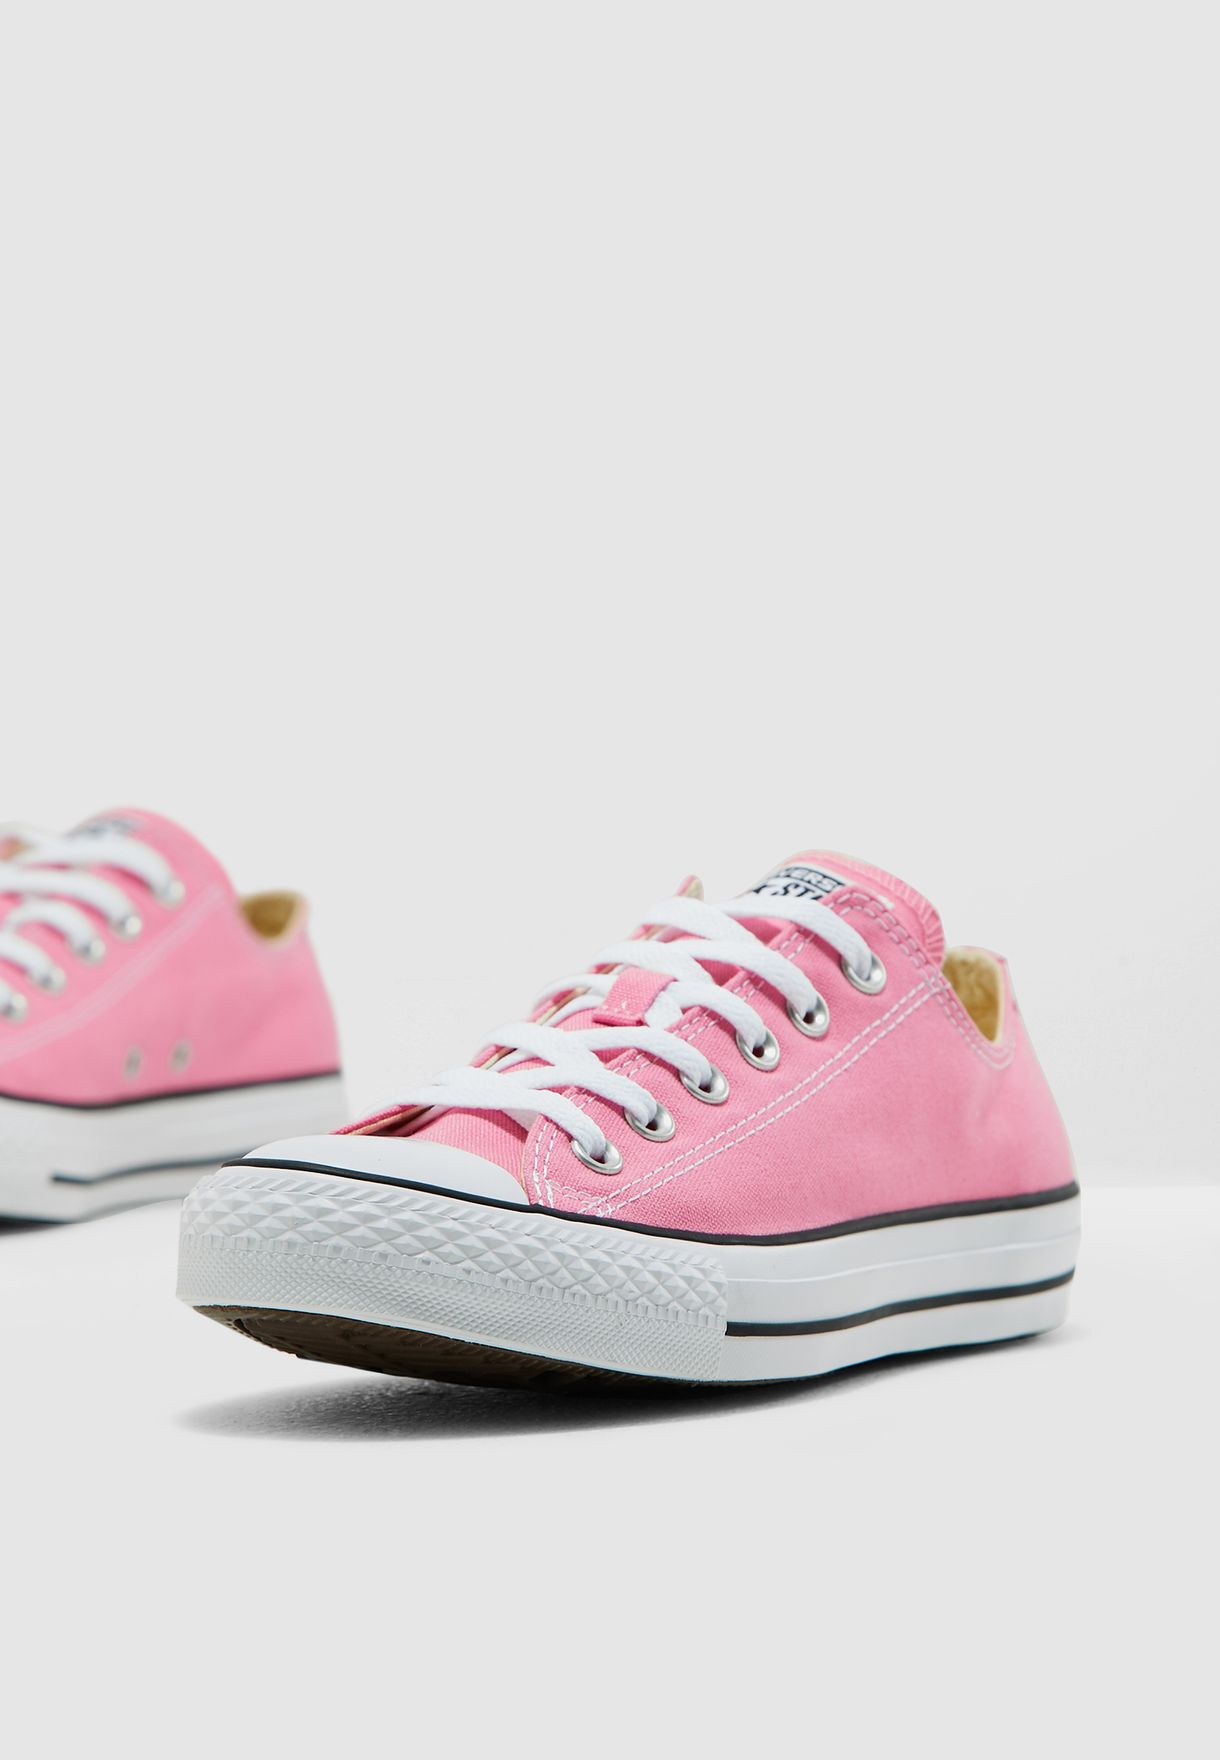 35928475c92b Shop Converse pink Chuck Taylor All Star M9007-650 for Women in ...